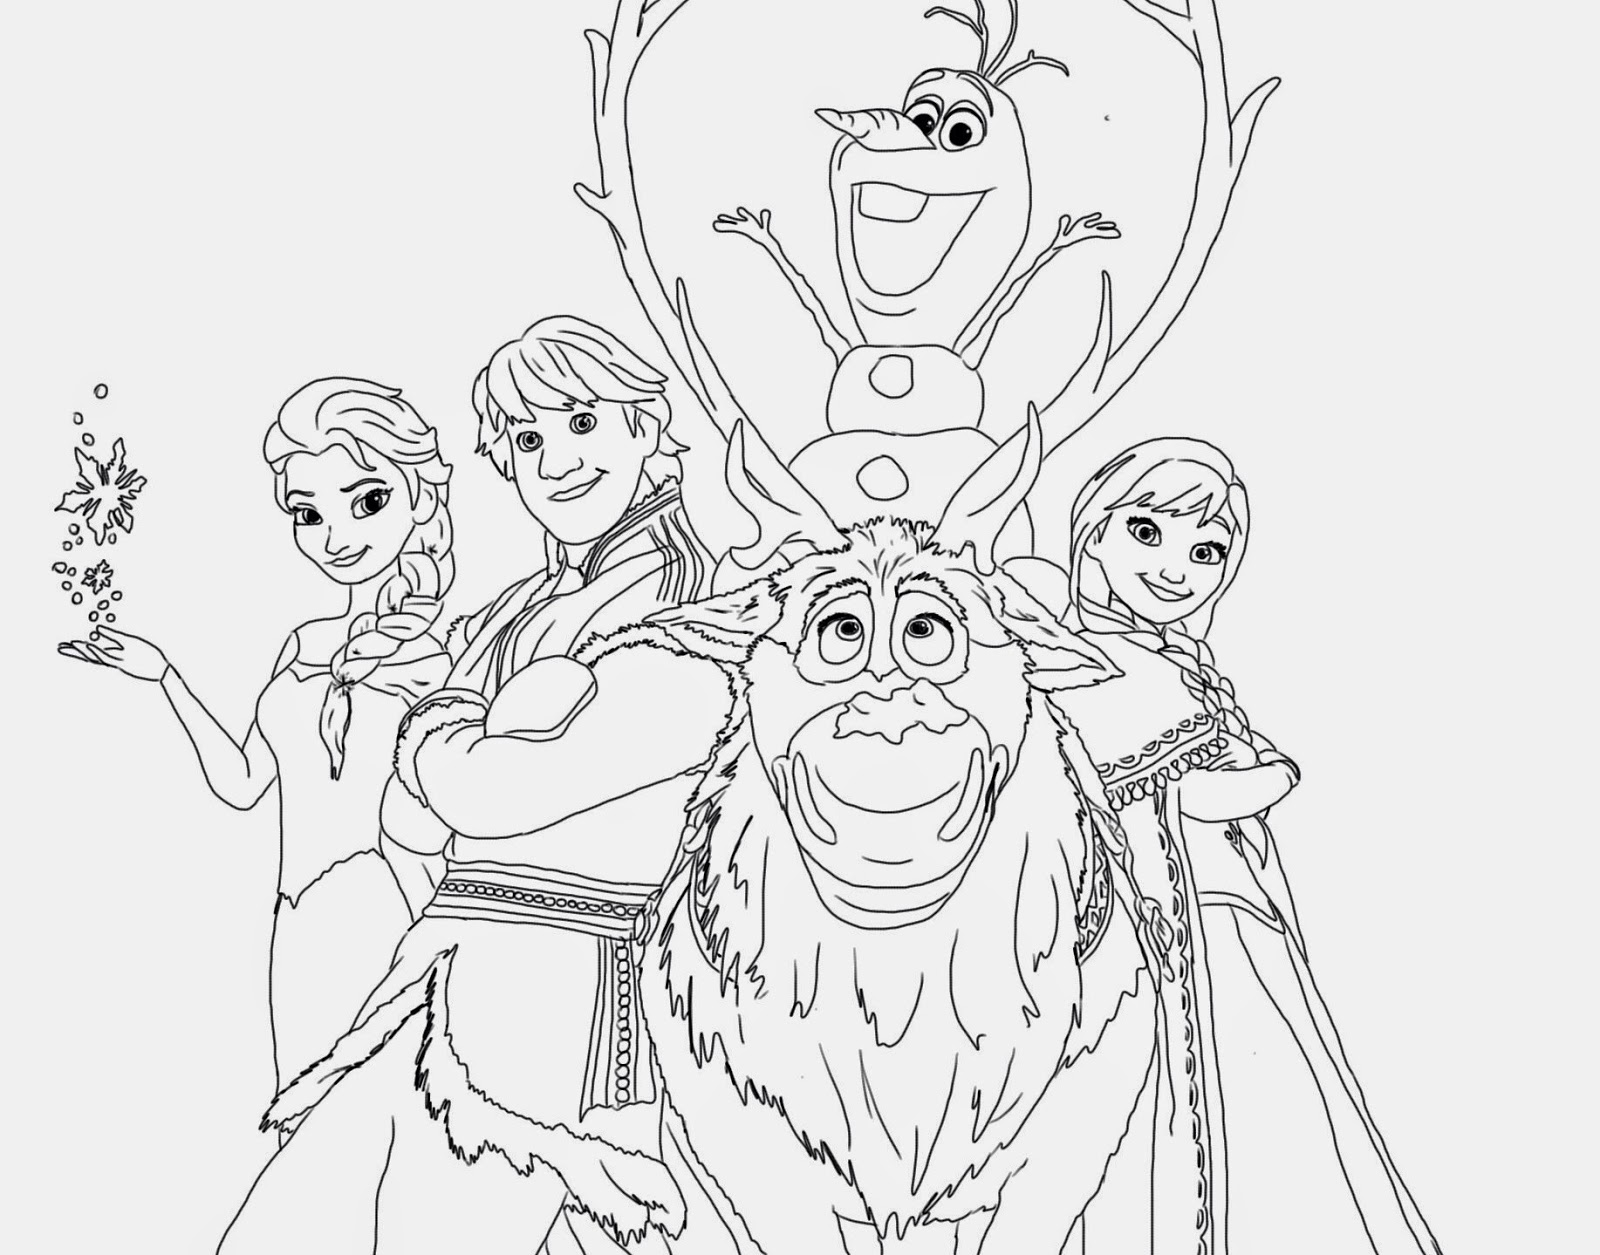 Frozen Coloring Pages Colouring Page Free Printable  - coloring pages free printable disney